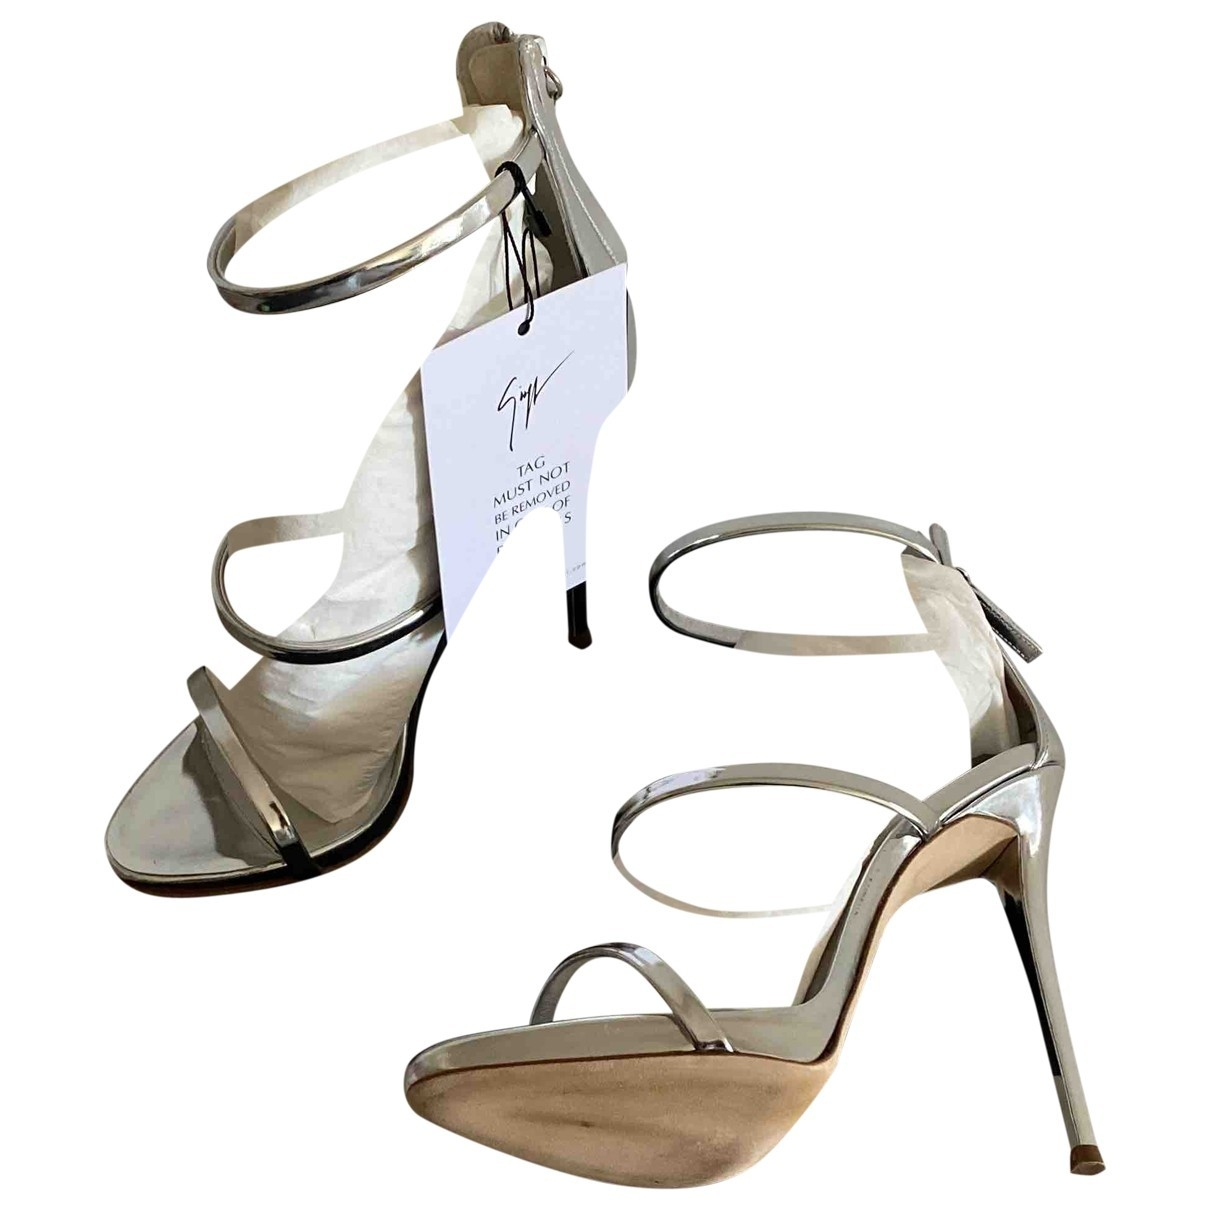 Giuseppe Zanotti \N Silver Patent leather Sandals for Women 38 EU